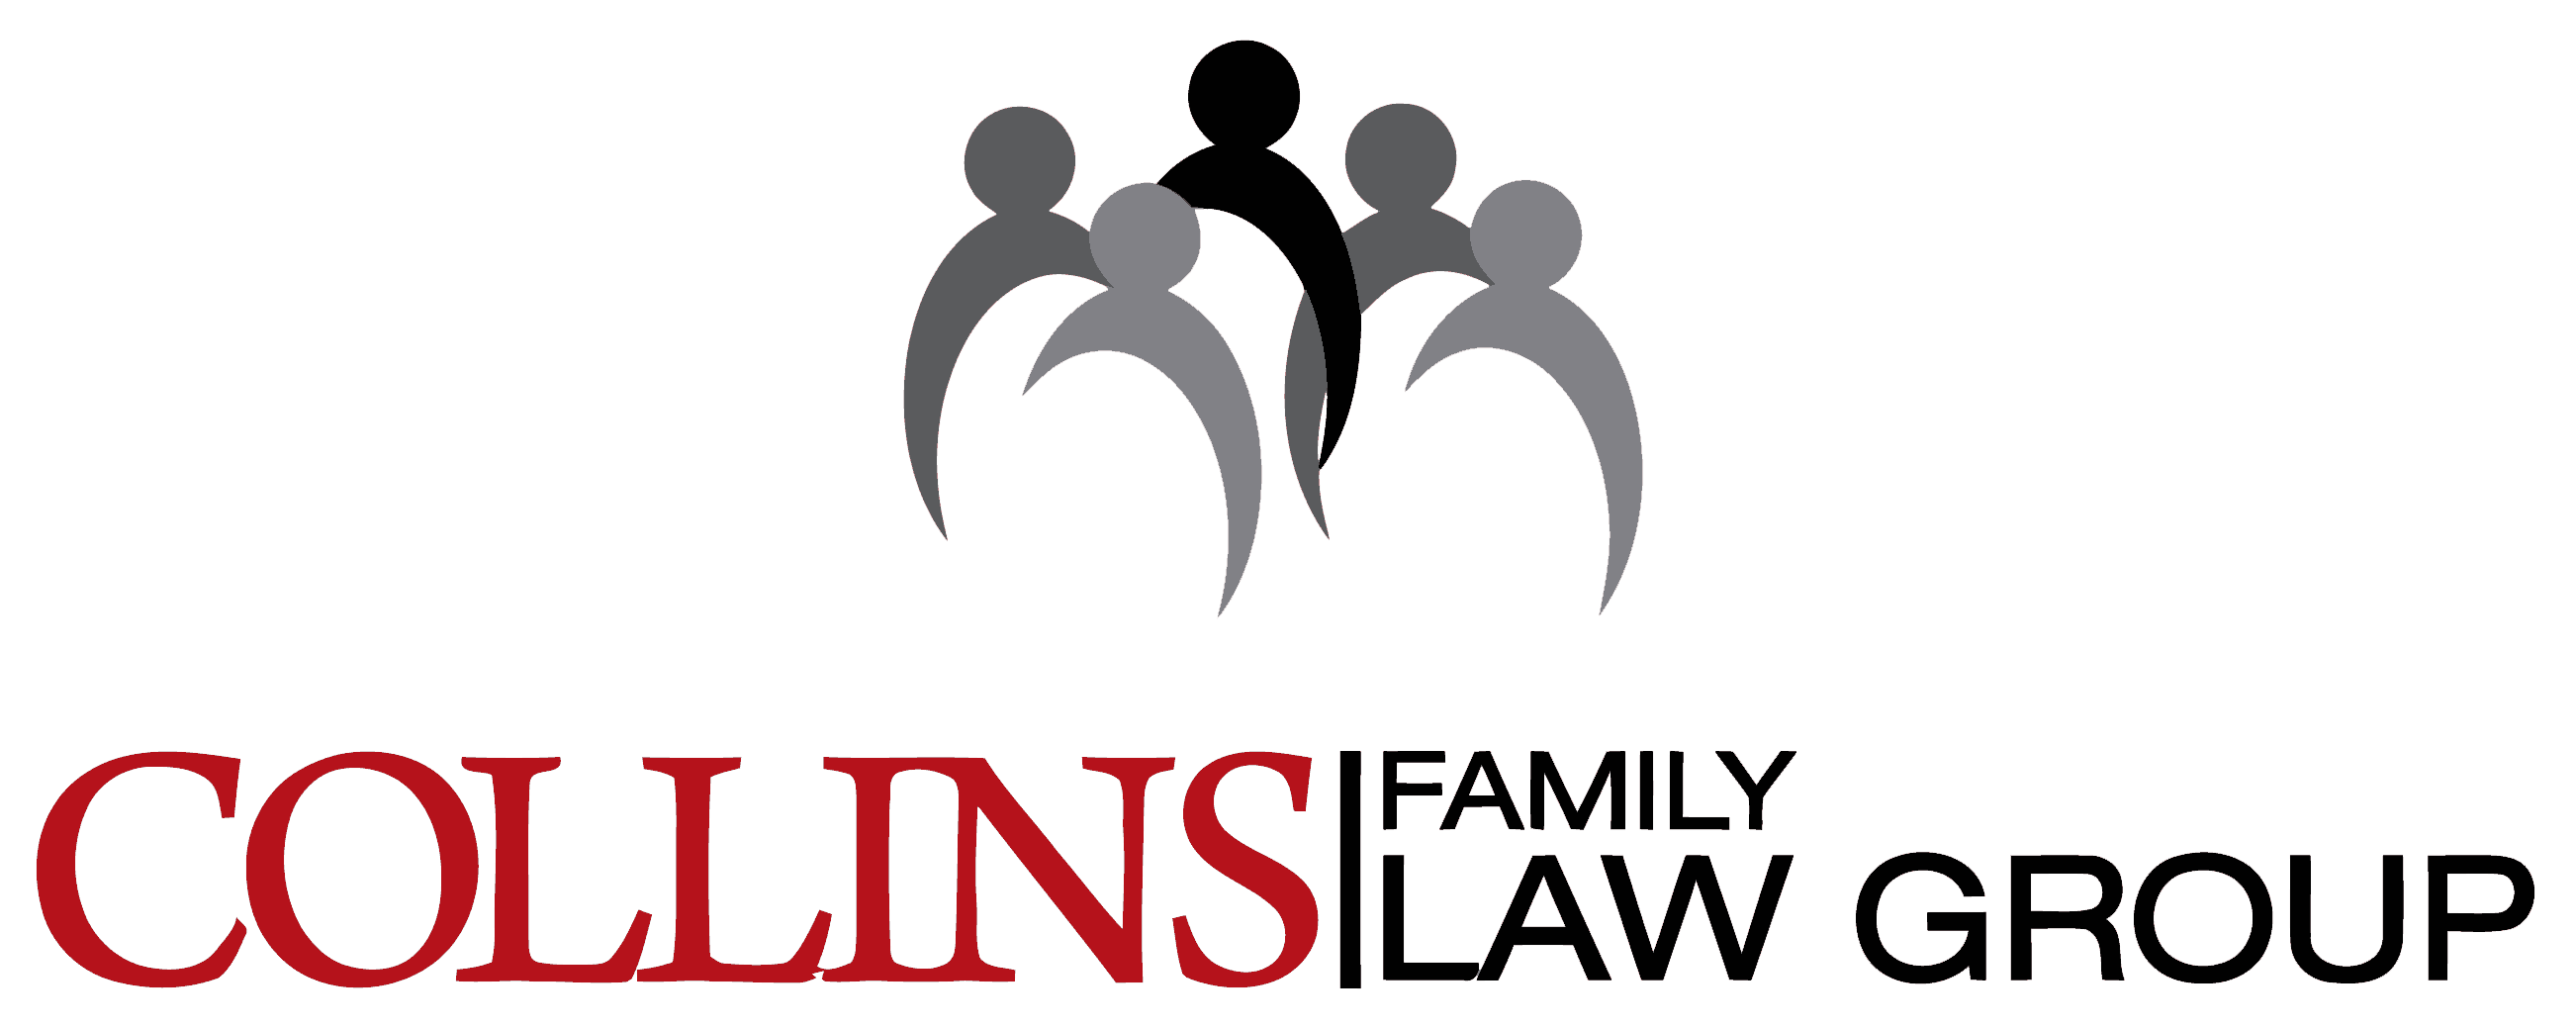 Collins Family Law Group logo icon with text in red and people icon in both grey and black